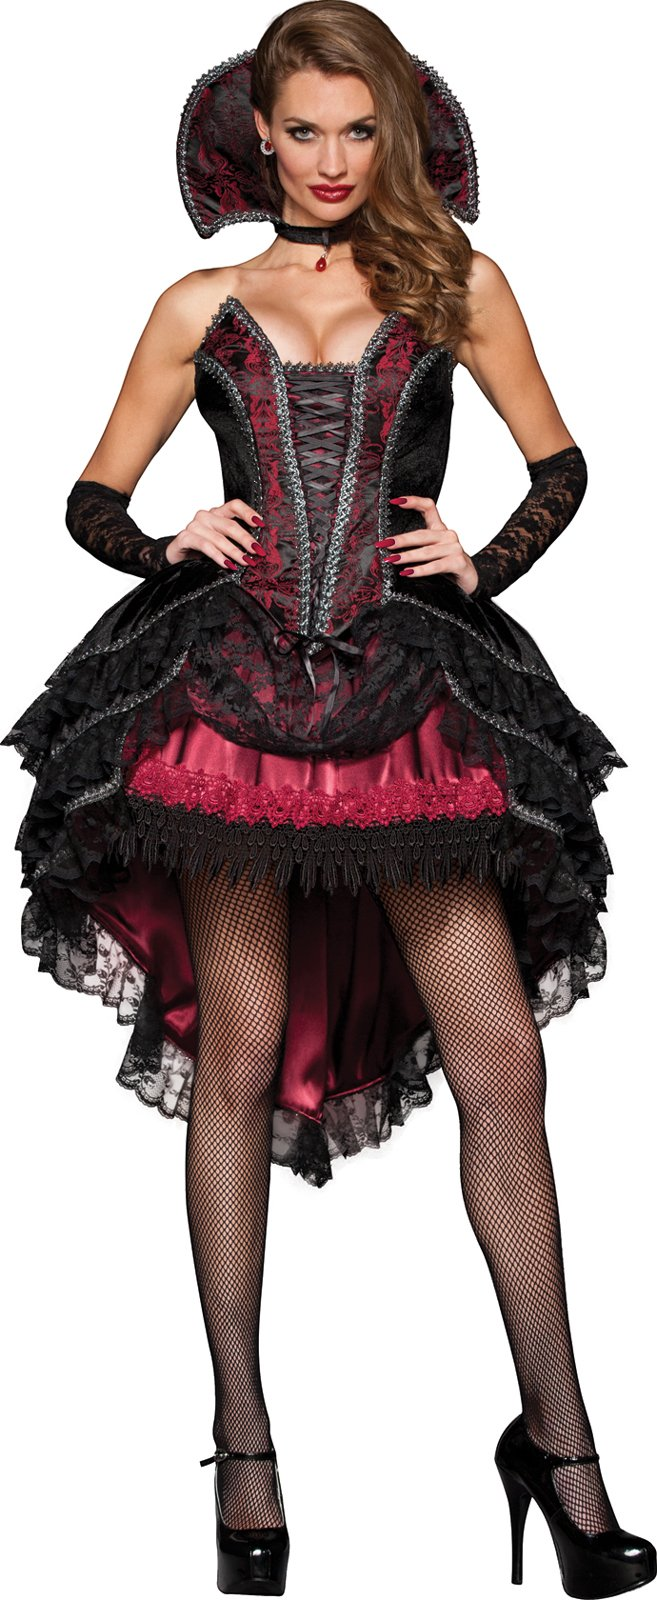 Enchanting Vampiress Vixen Adult Costume